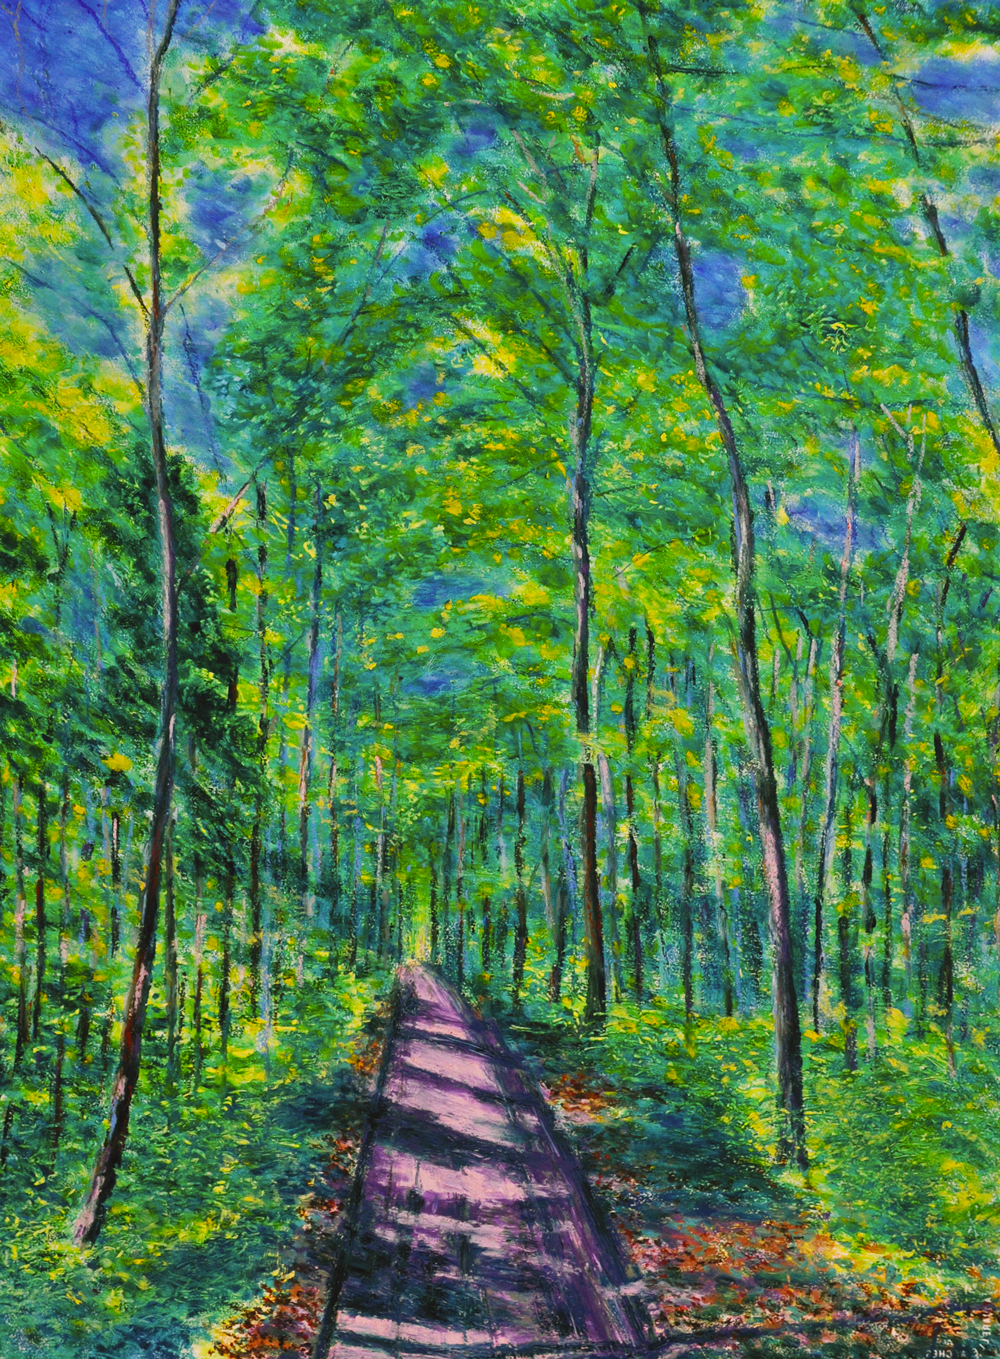 Cossonay forest no. 9. Oil pastel on paper, 75x60, 2016